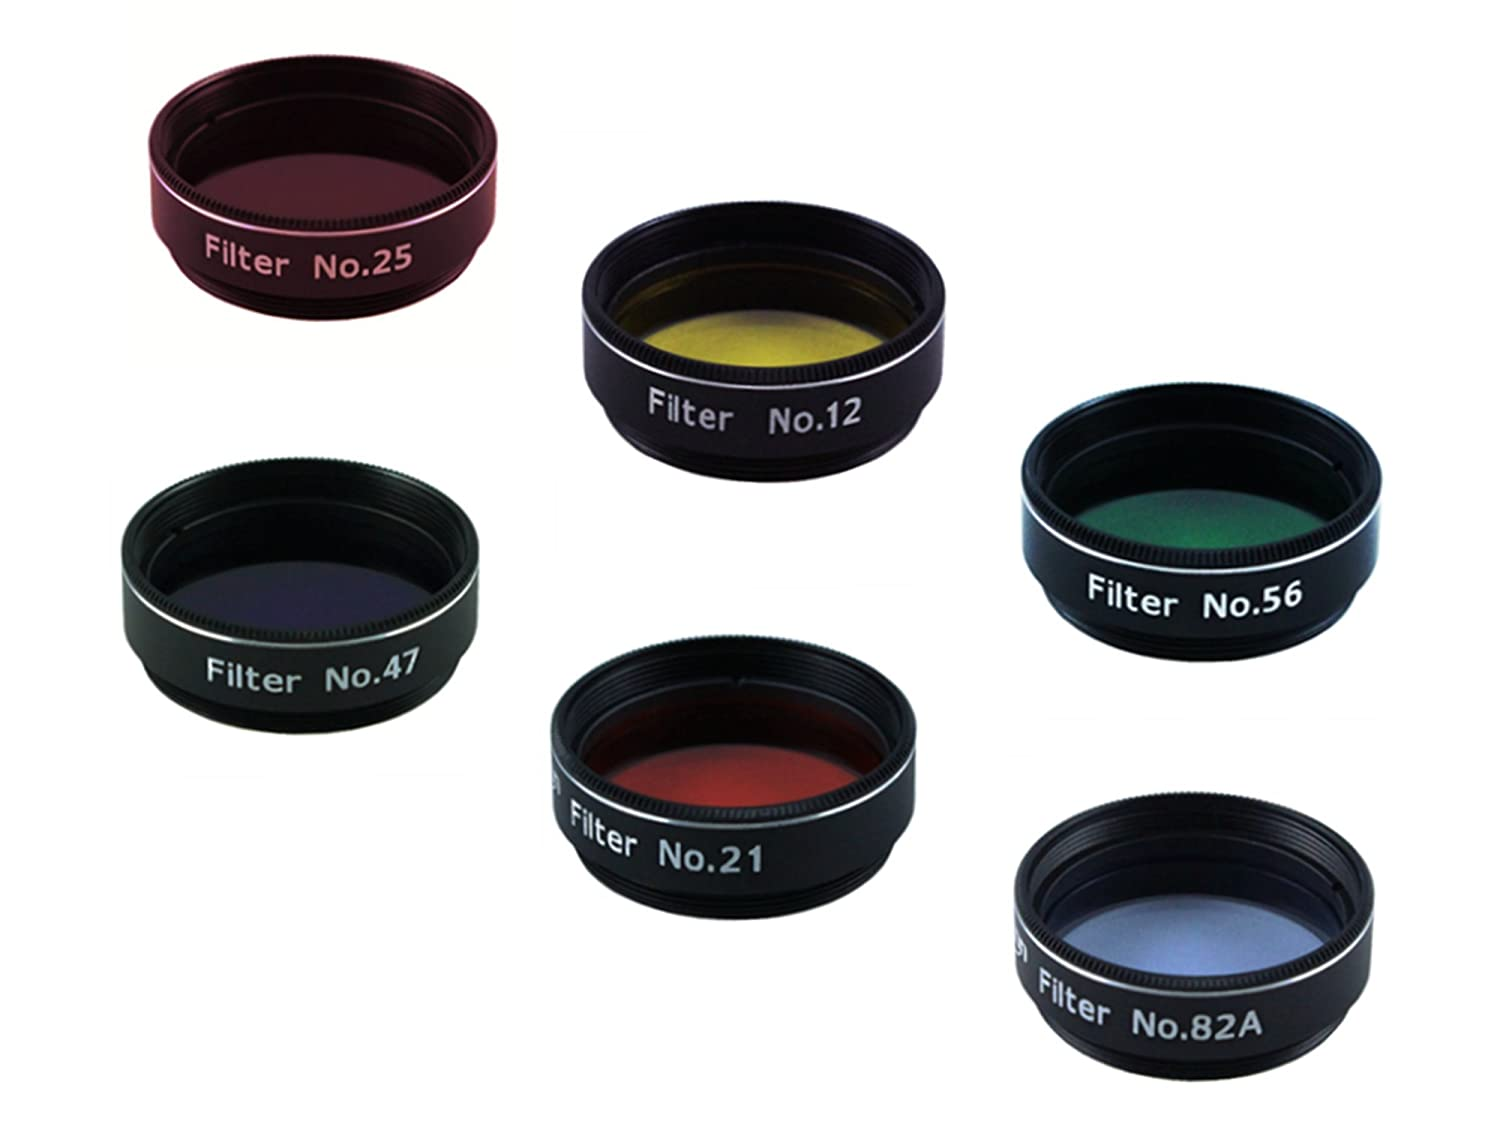 Astromania 3.17 CMカラーフィルタセット( 6 Pieces ) – 値フィルタパック – Simply Screwed into the Thread On The Eyepiece   B01M36CM6M